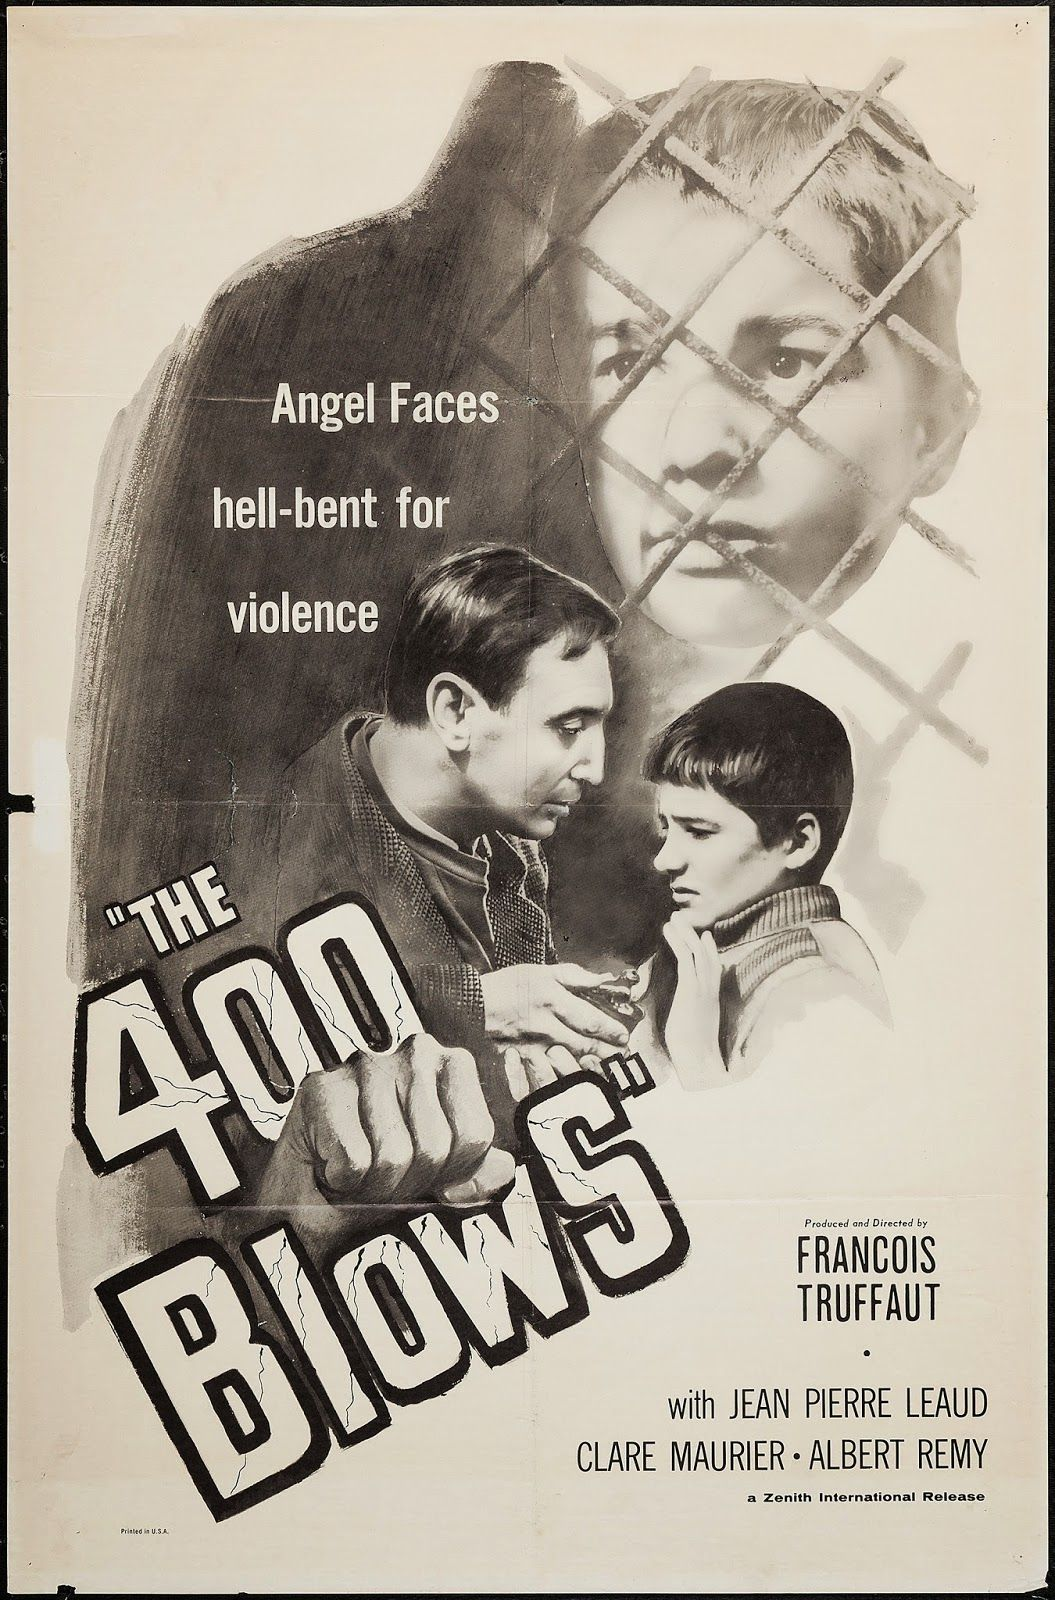 La Chambre Verte Truffaut Streaming Francois Truffaut 1959 The 400 Blows Les Quatre Cents Coups